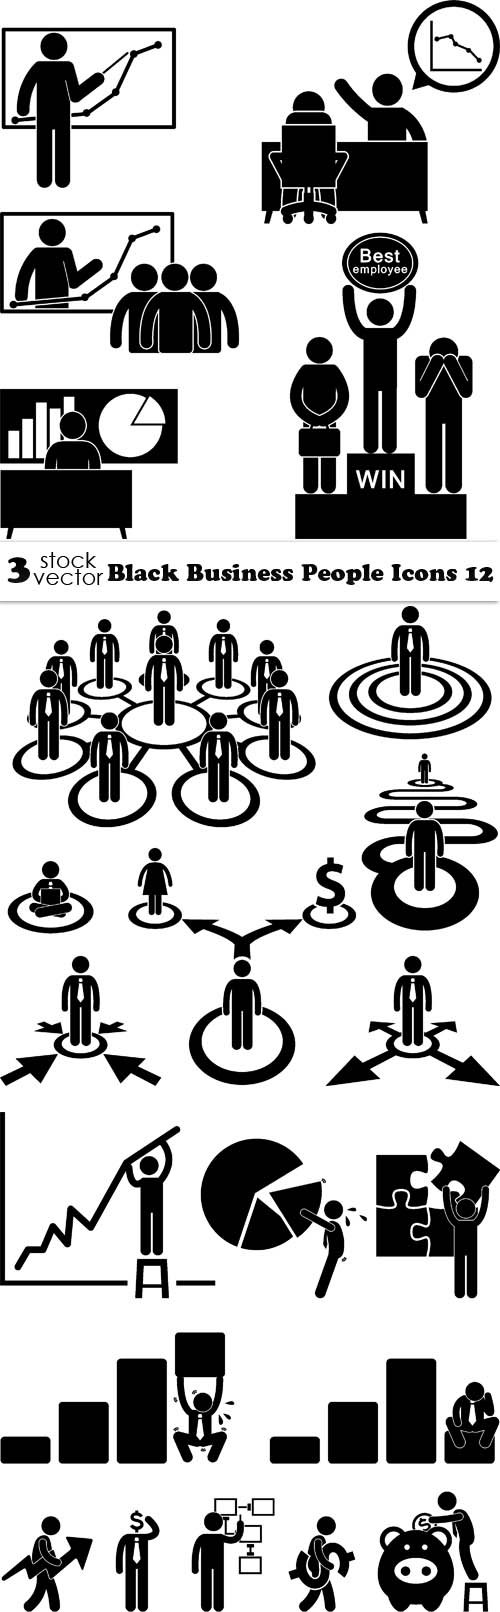 Vectors - Black Business People Icons 12